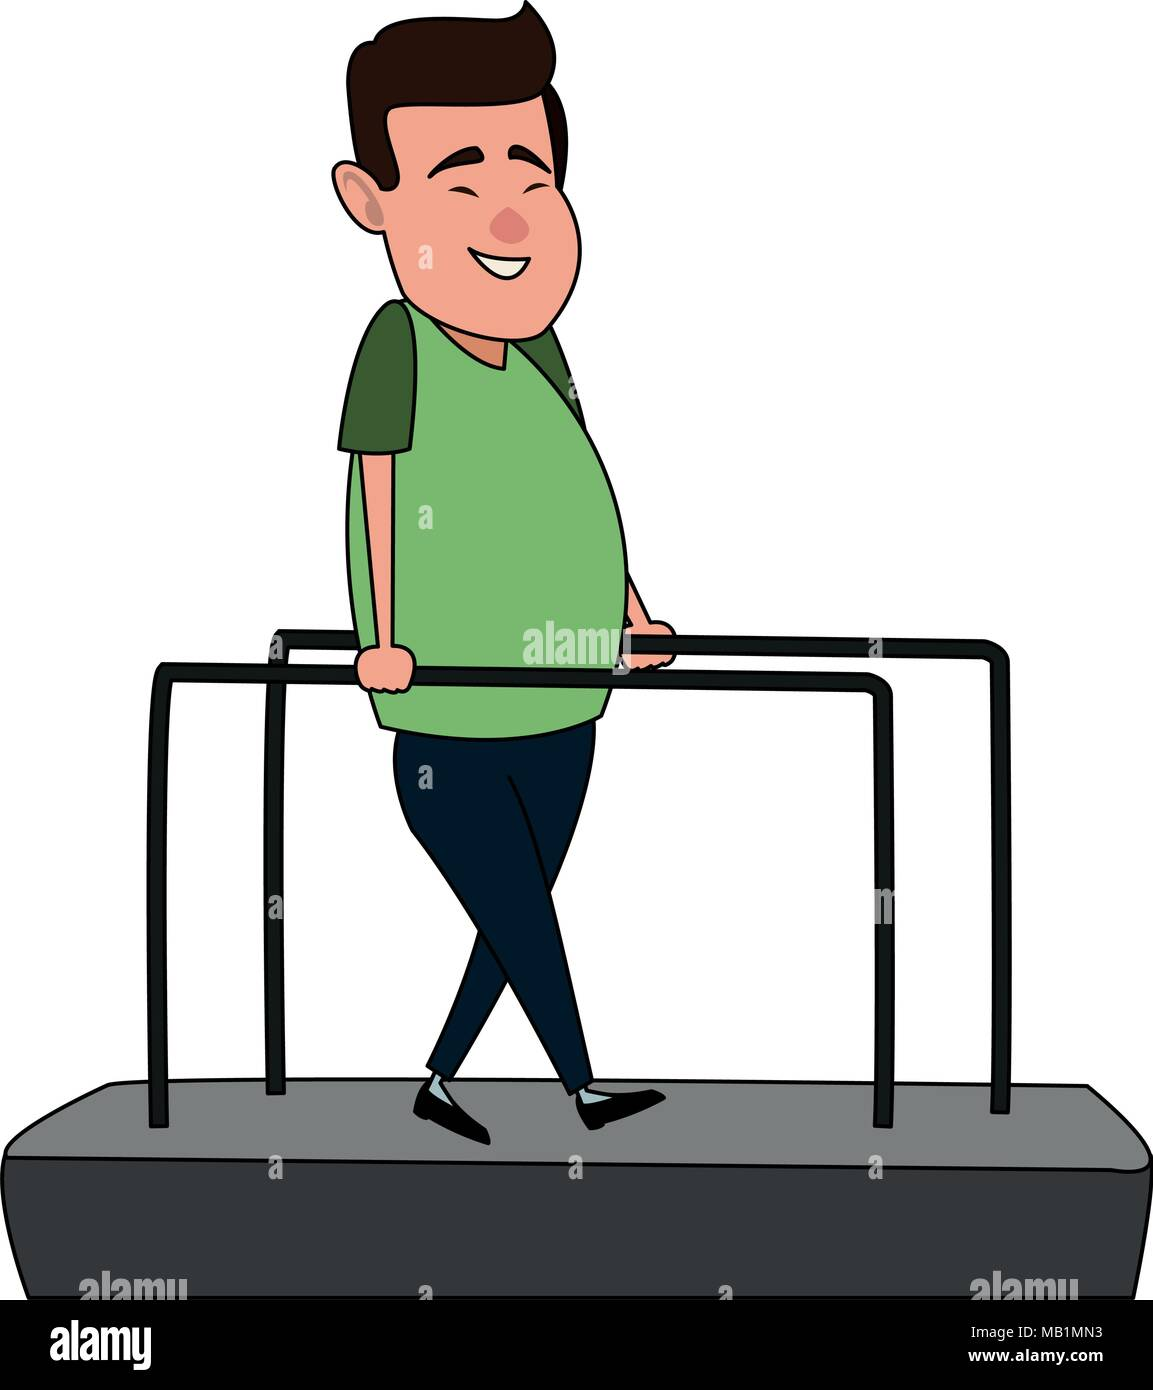 patient on walk therapy cartoon - Stock Image